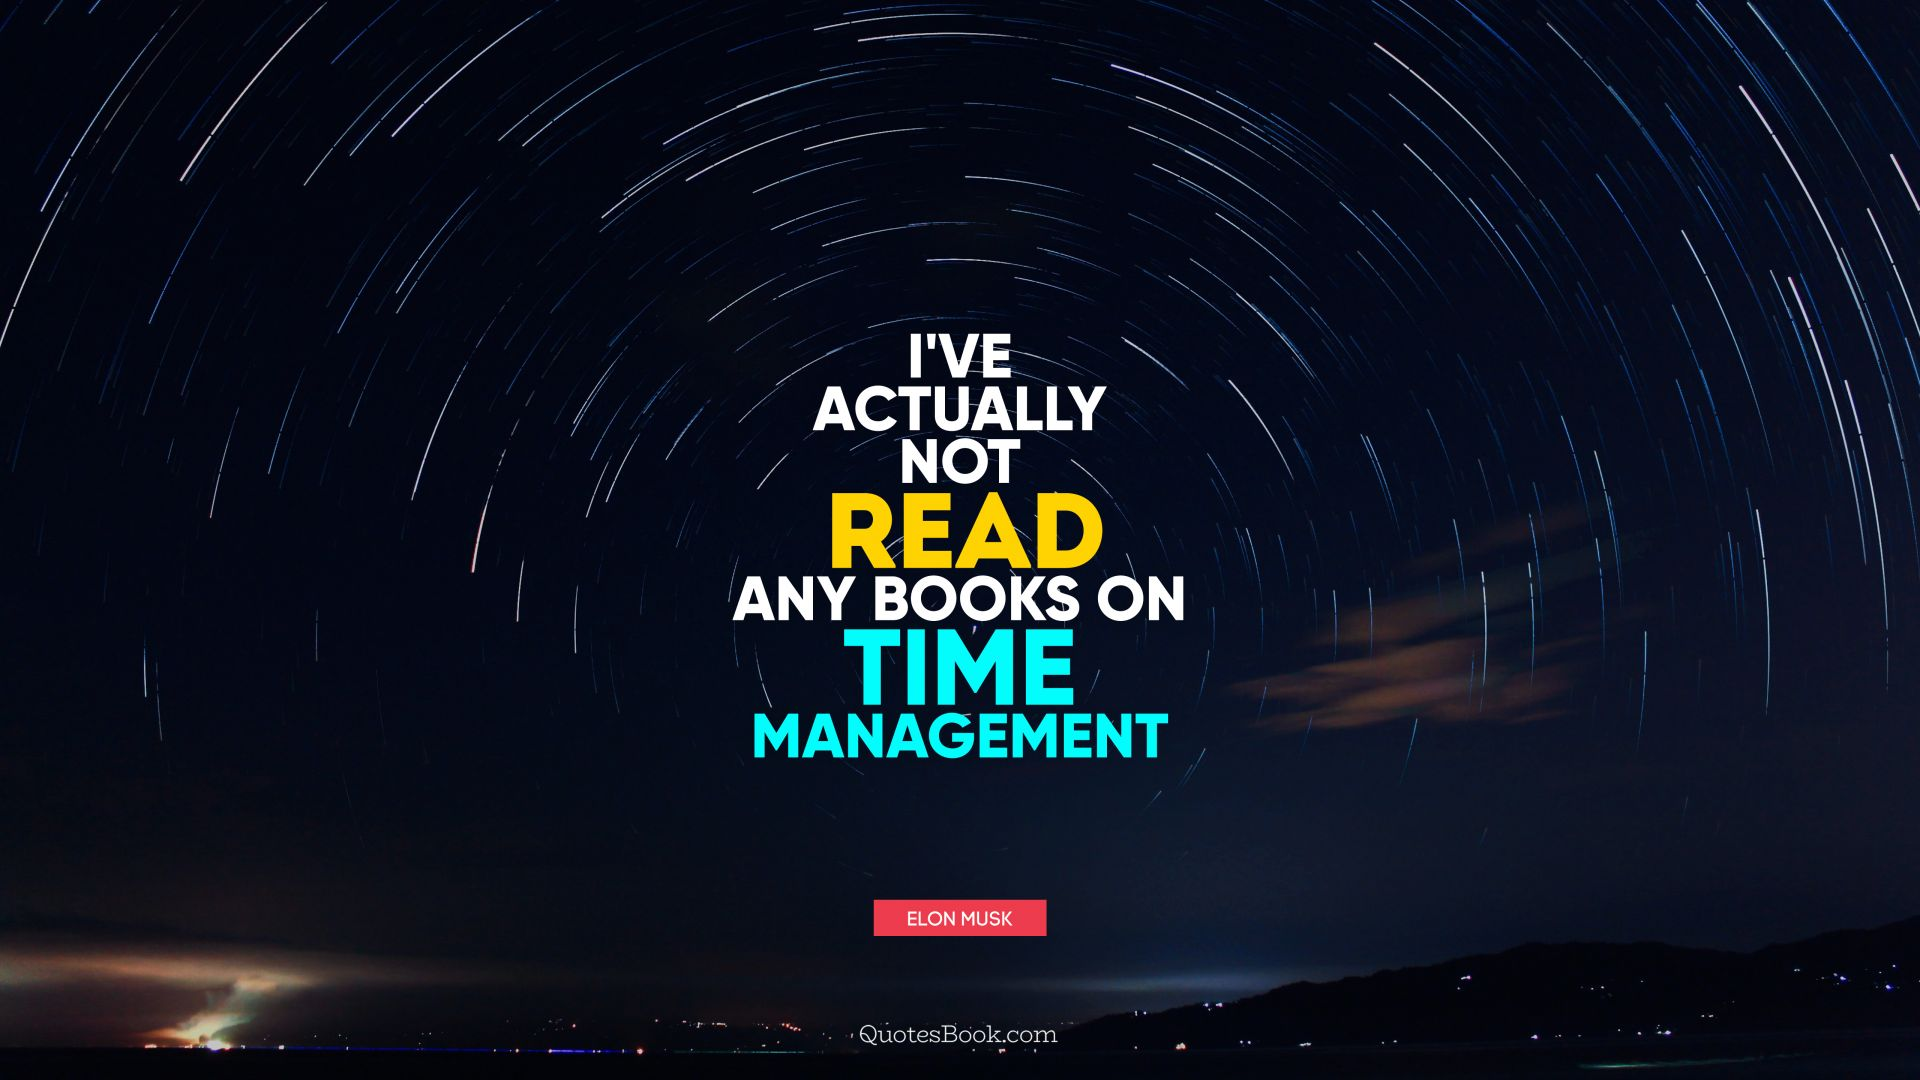 I've actually not read any books on time management. - Quote by Elon Musk